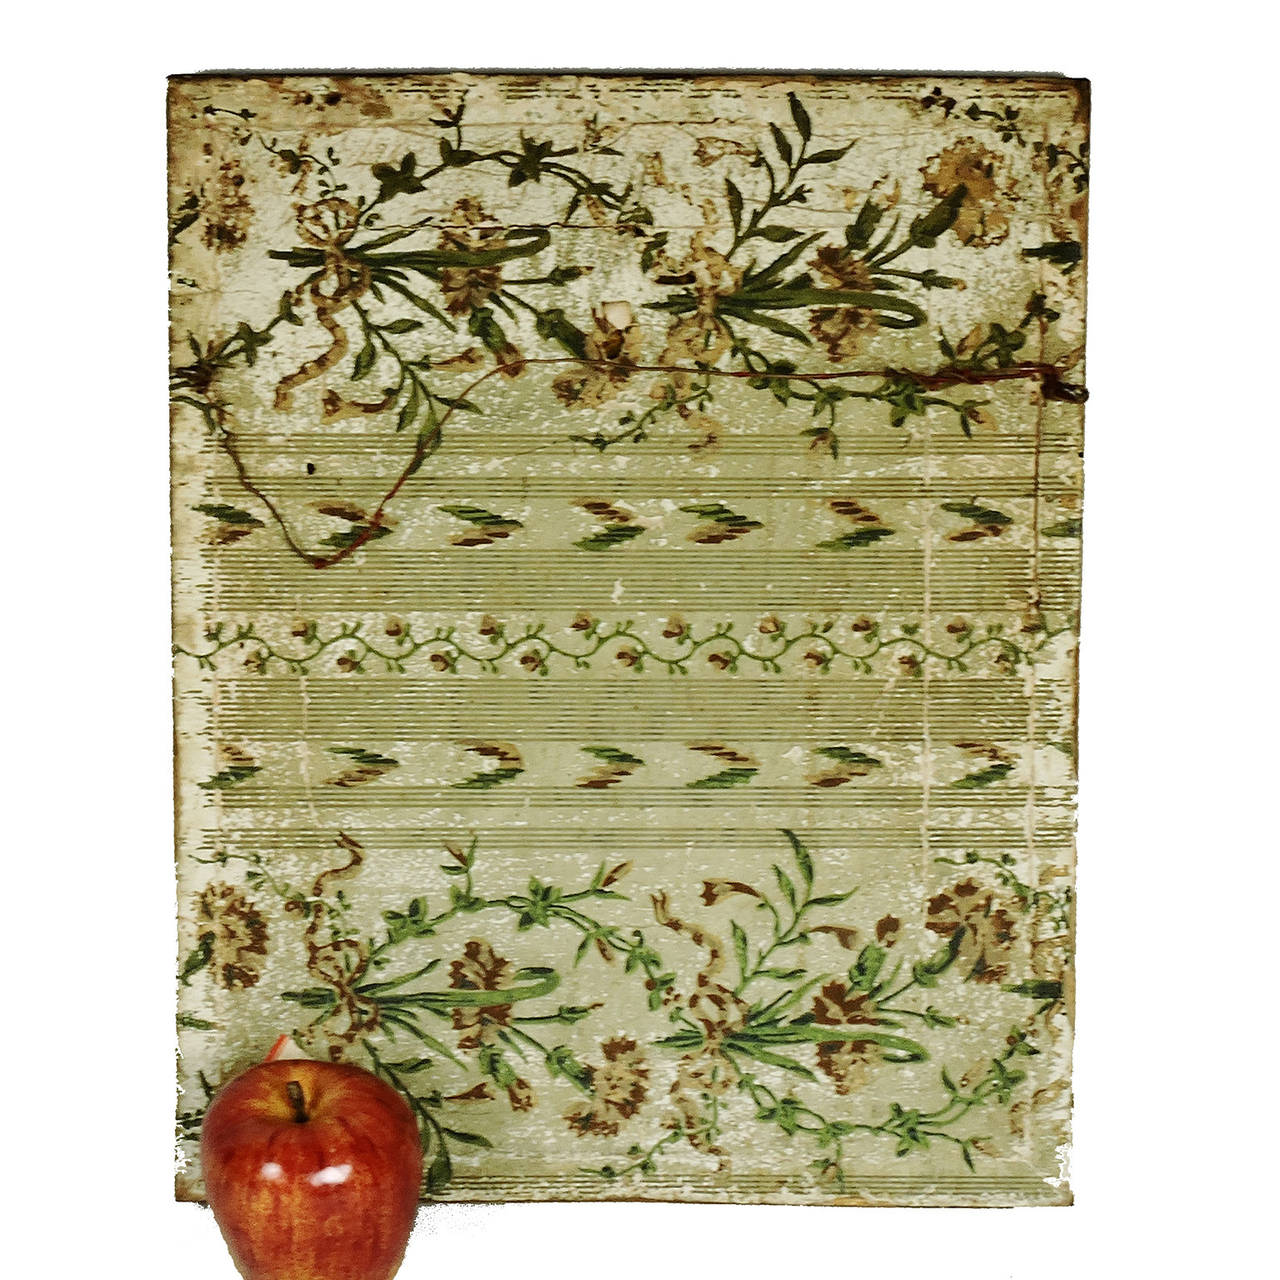 'Fame Decorating Shakespeare's Tomb' Needlework Picture 18th-19th Century In Good Condition For Sale In Concord, MA